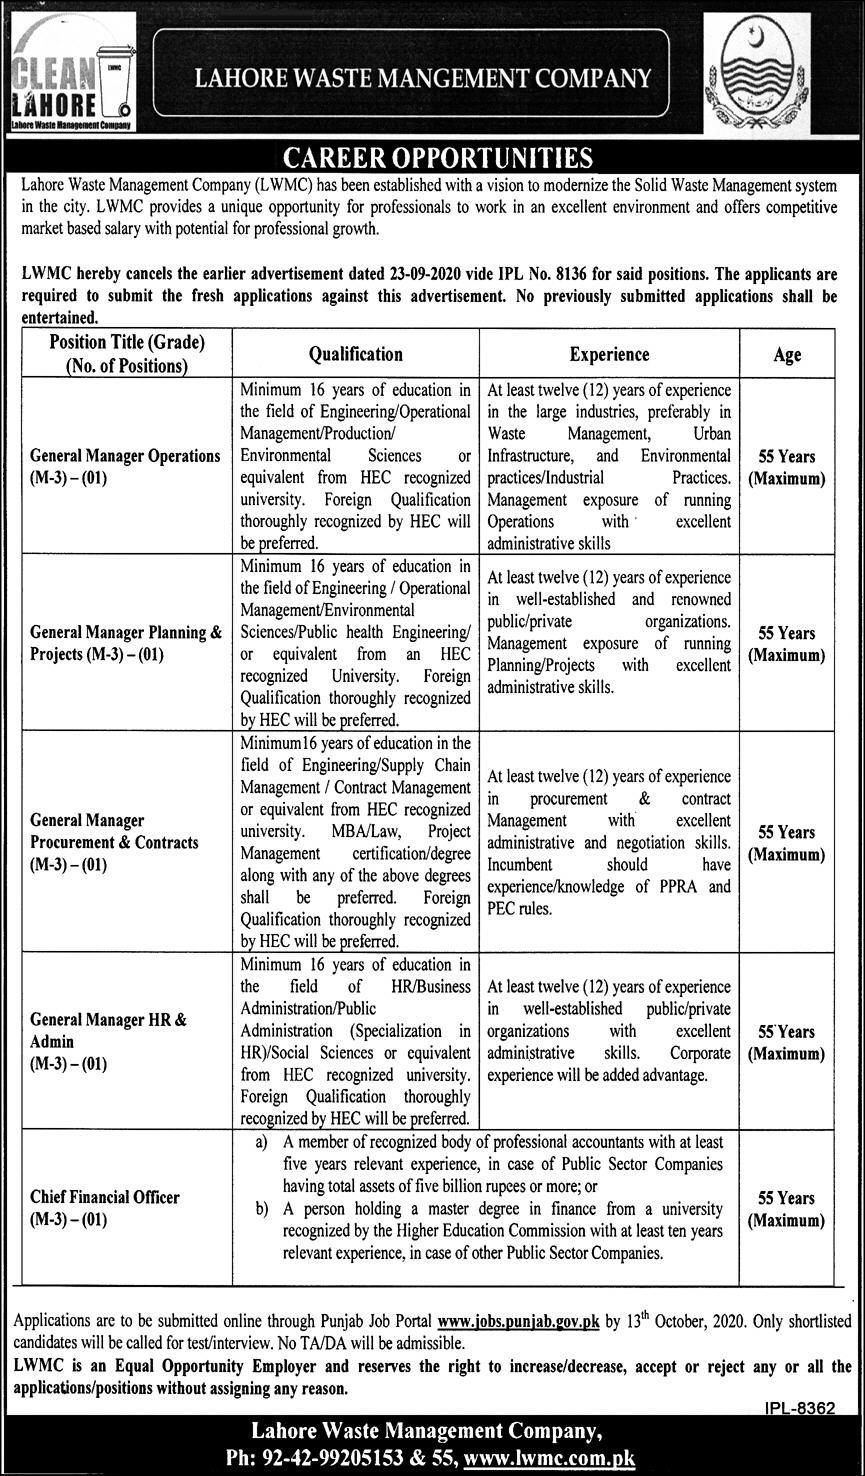 Lahore Waste Management Company LWMC Jobs 2020 for General Manager Operations, General Manager Planning & Project, General Manager Procurement & Contracts, General Manager HR & Admin, Cheif Financial Officer Latest Punjab